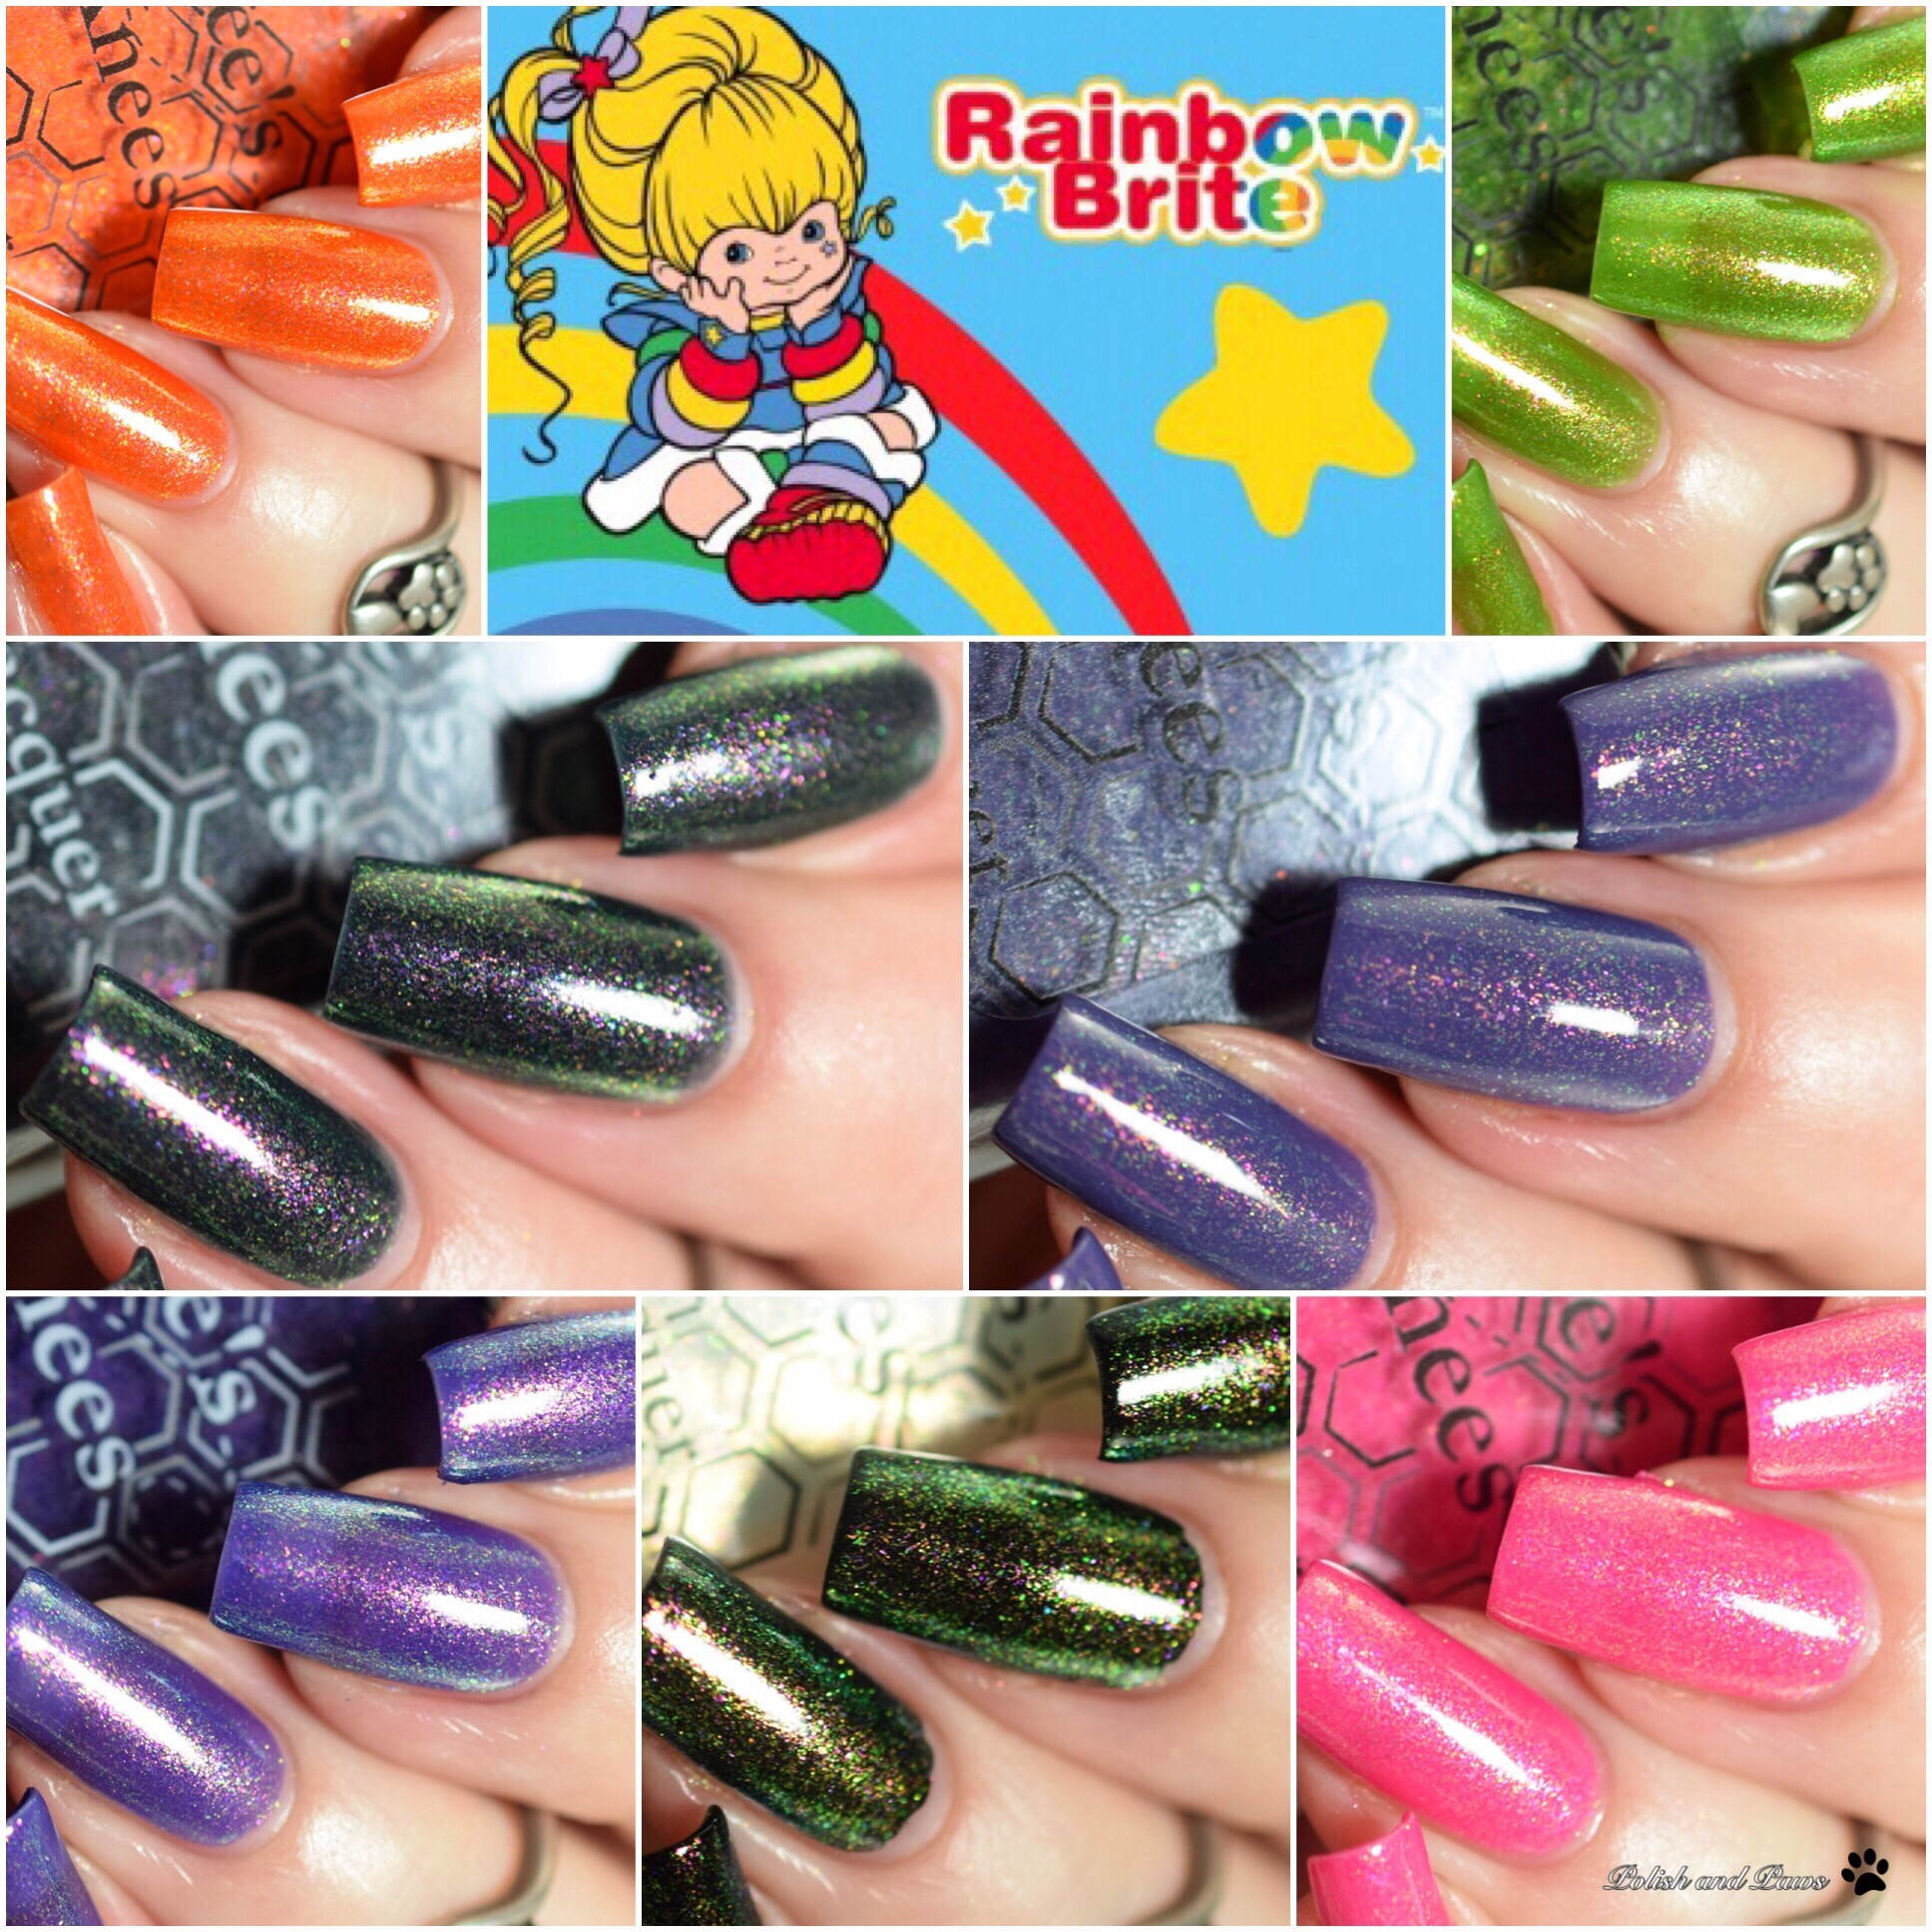 Bee's Knees Lacquer Rainbow Brite Collection